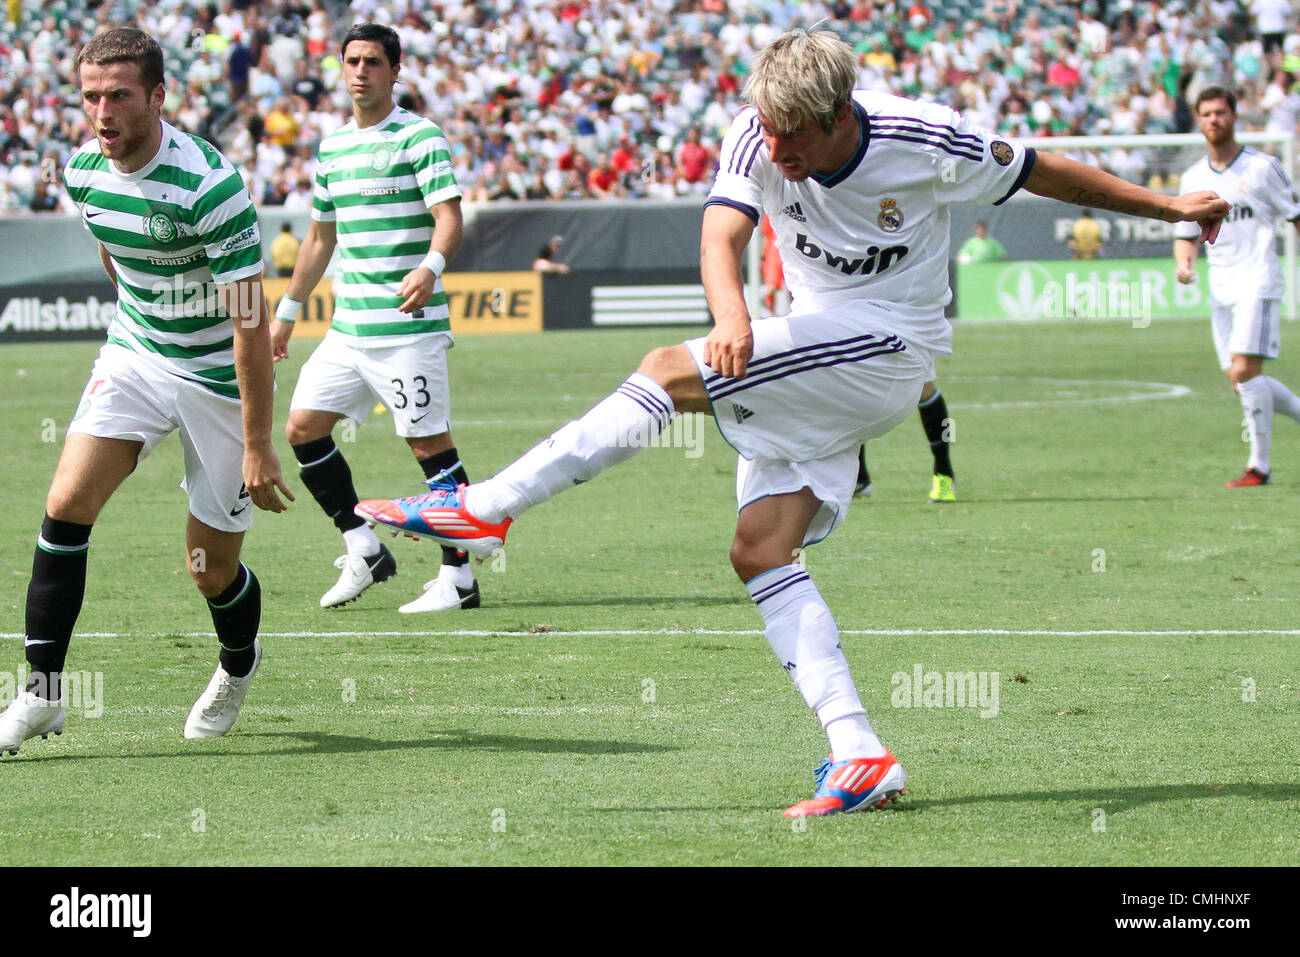 11.08.2012. Philadelphia, USA.  Real Madrid midfielder Fabio Coentrao (15) fires a shot at net in the World Football Stock Photo